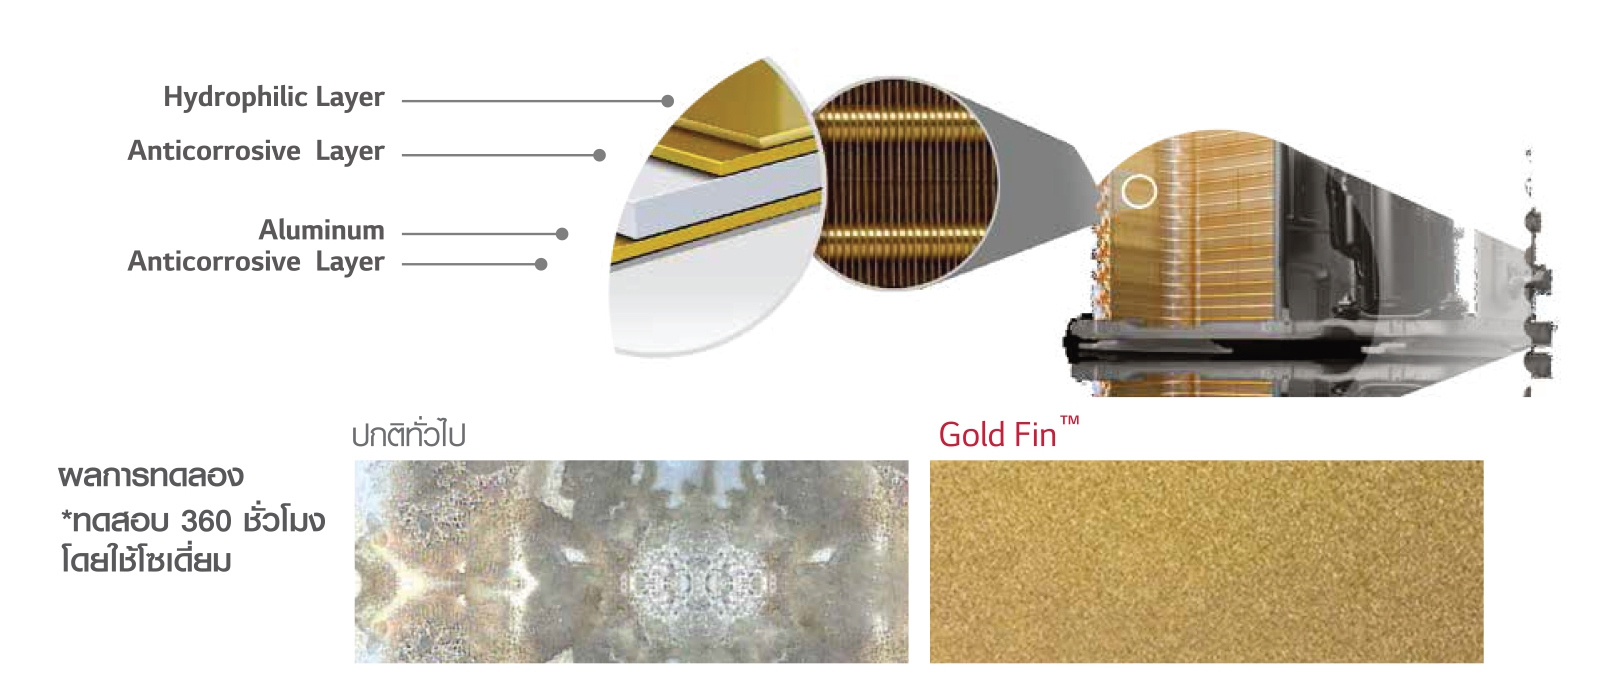 LG DUALCOOL with Air Purifying System Feature Gold Fin Technology